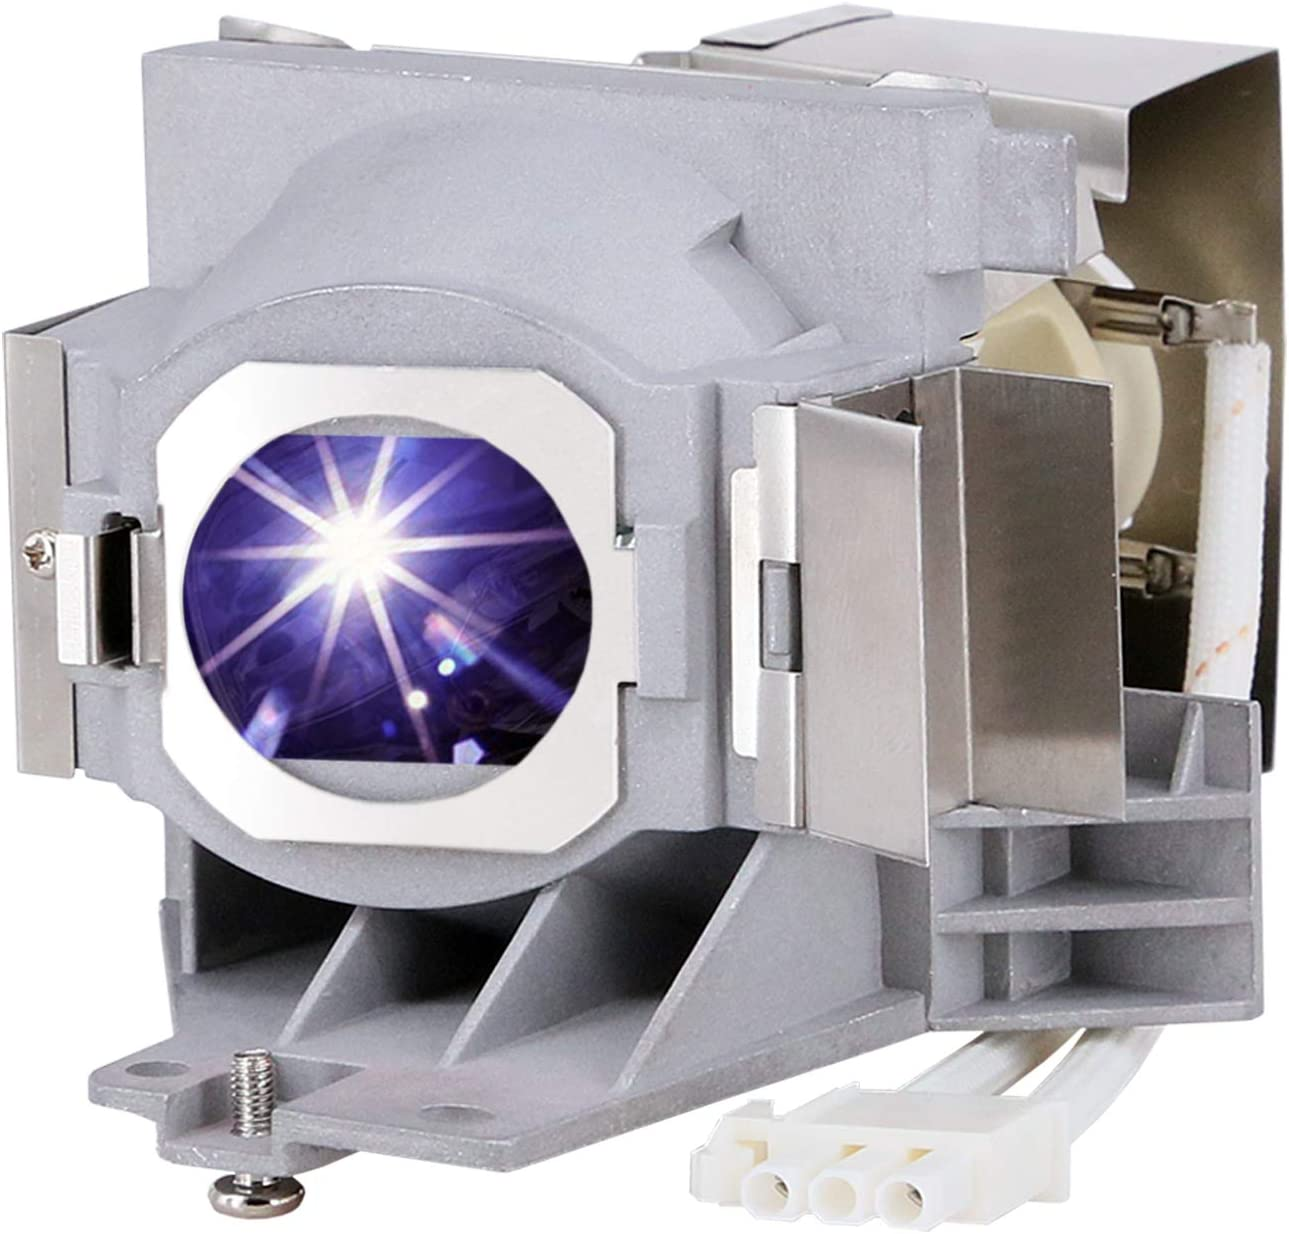 YOSUN 5J.JEE05.001 Projector lamp for Benq HT2050 HT2150ST HT2050A HT3050 W1110 W1210ST W2000 Projector Replacement Lamp - 240W